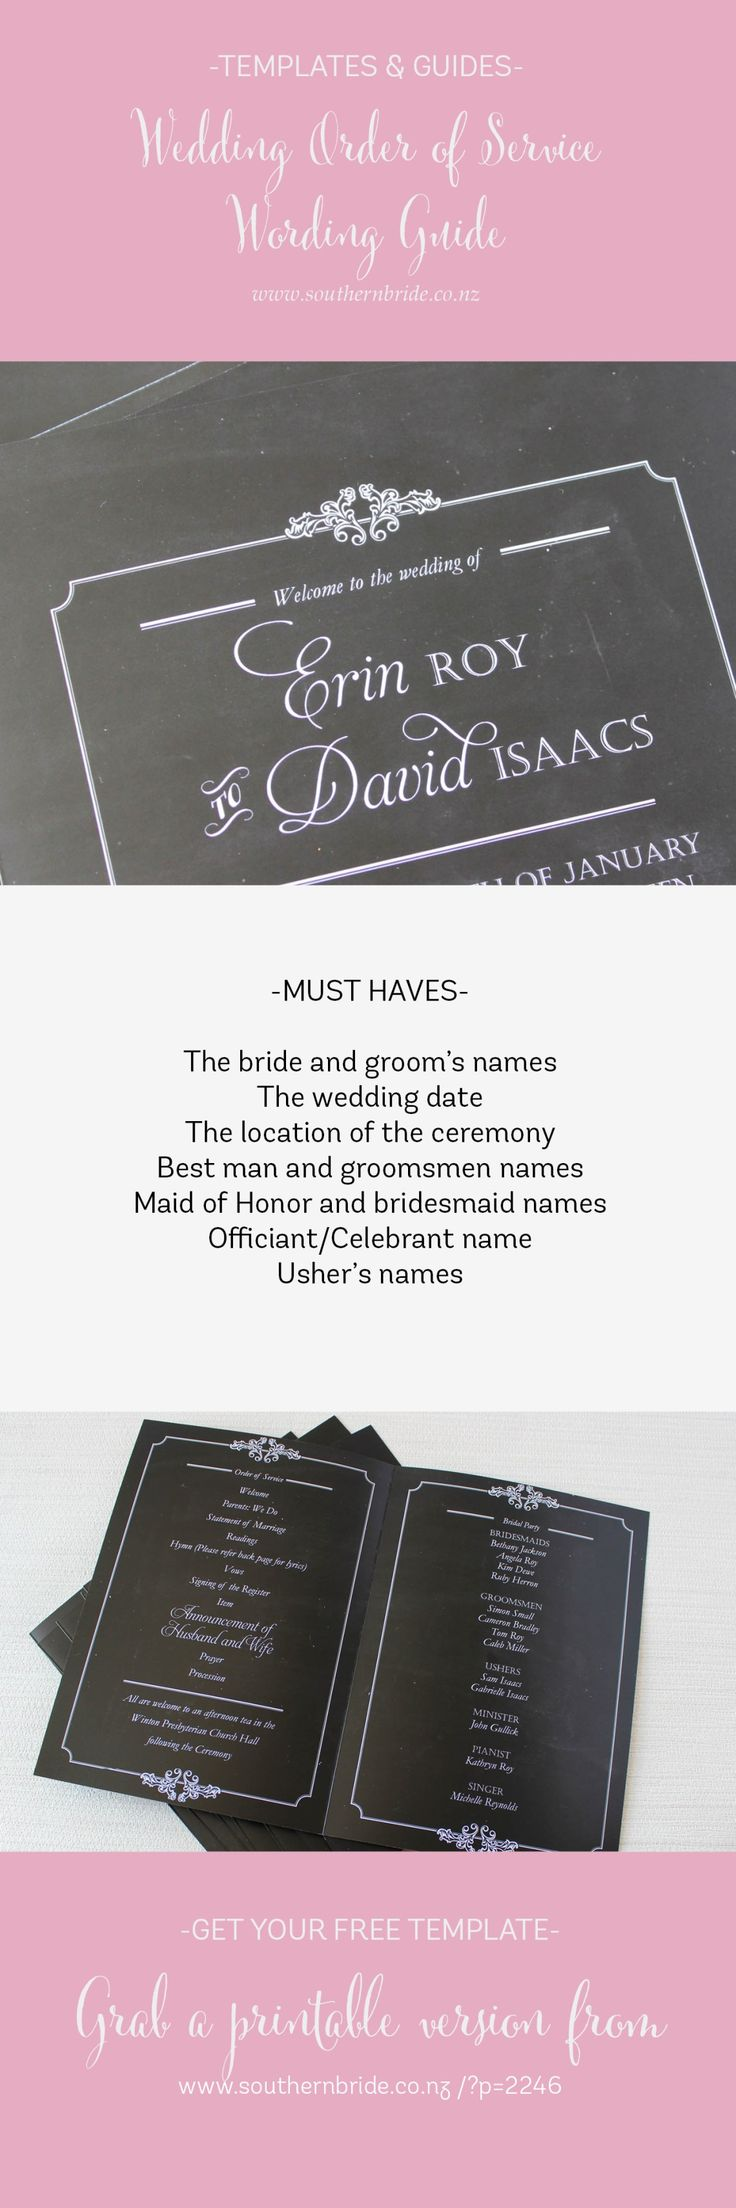 Wedding Order of Service Template Wording Ideas - Must Haves